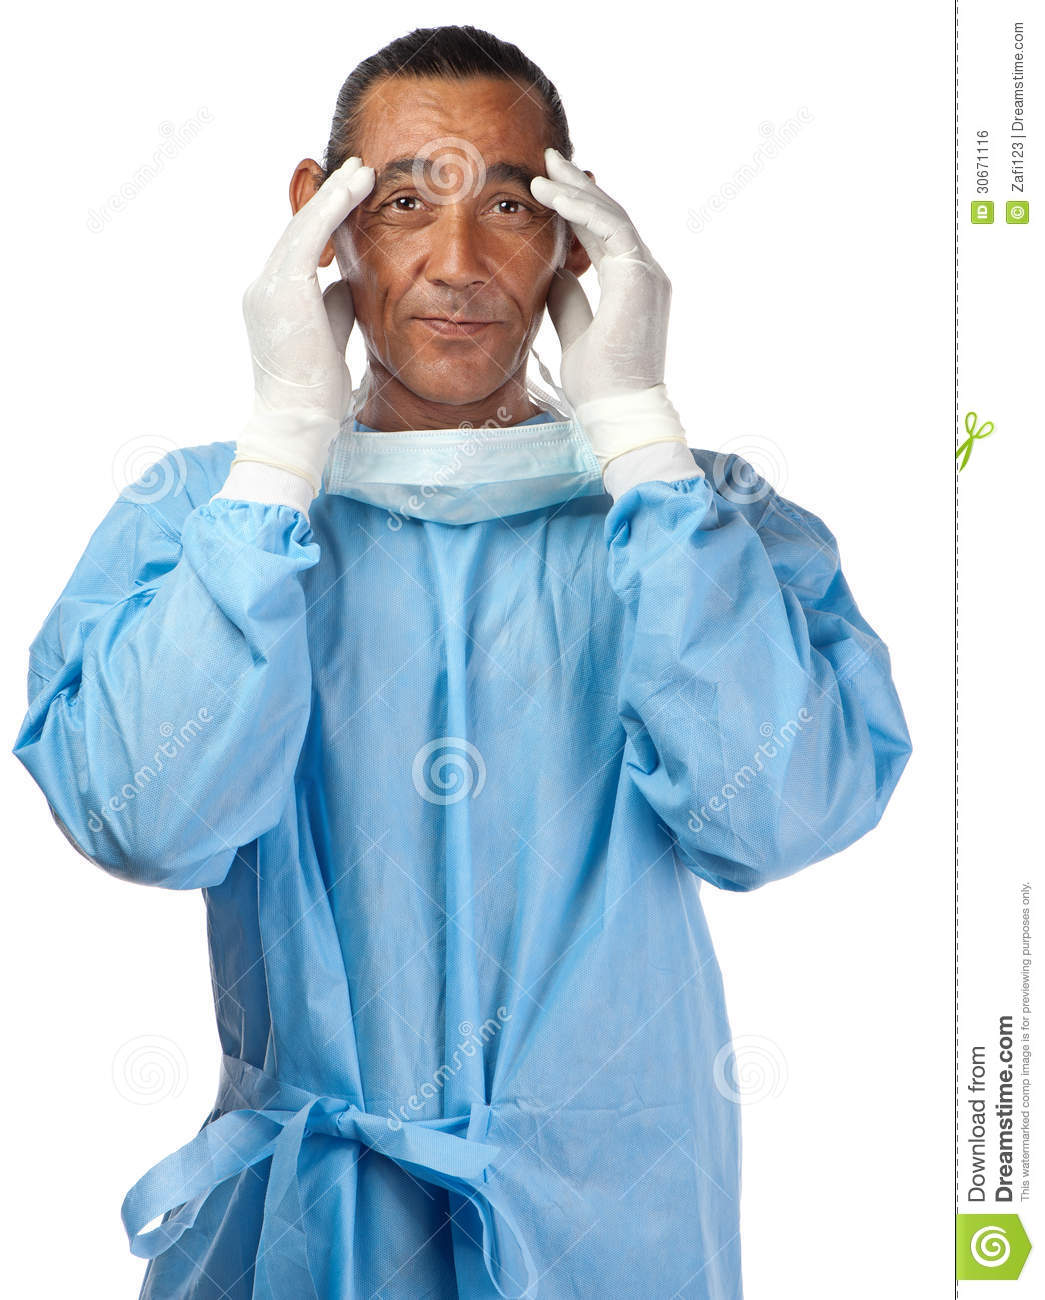 Stressed Doctor Royalty Free Stock Image - Image: 30671116